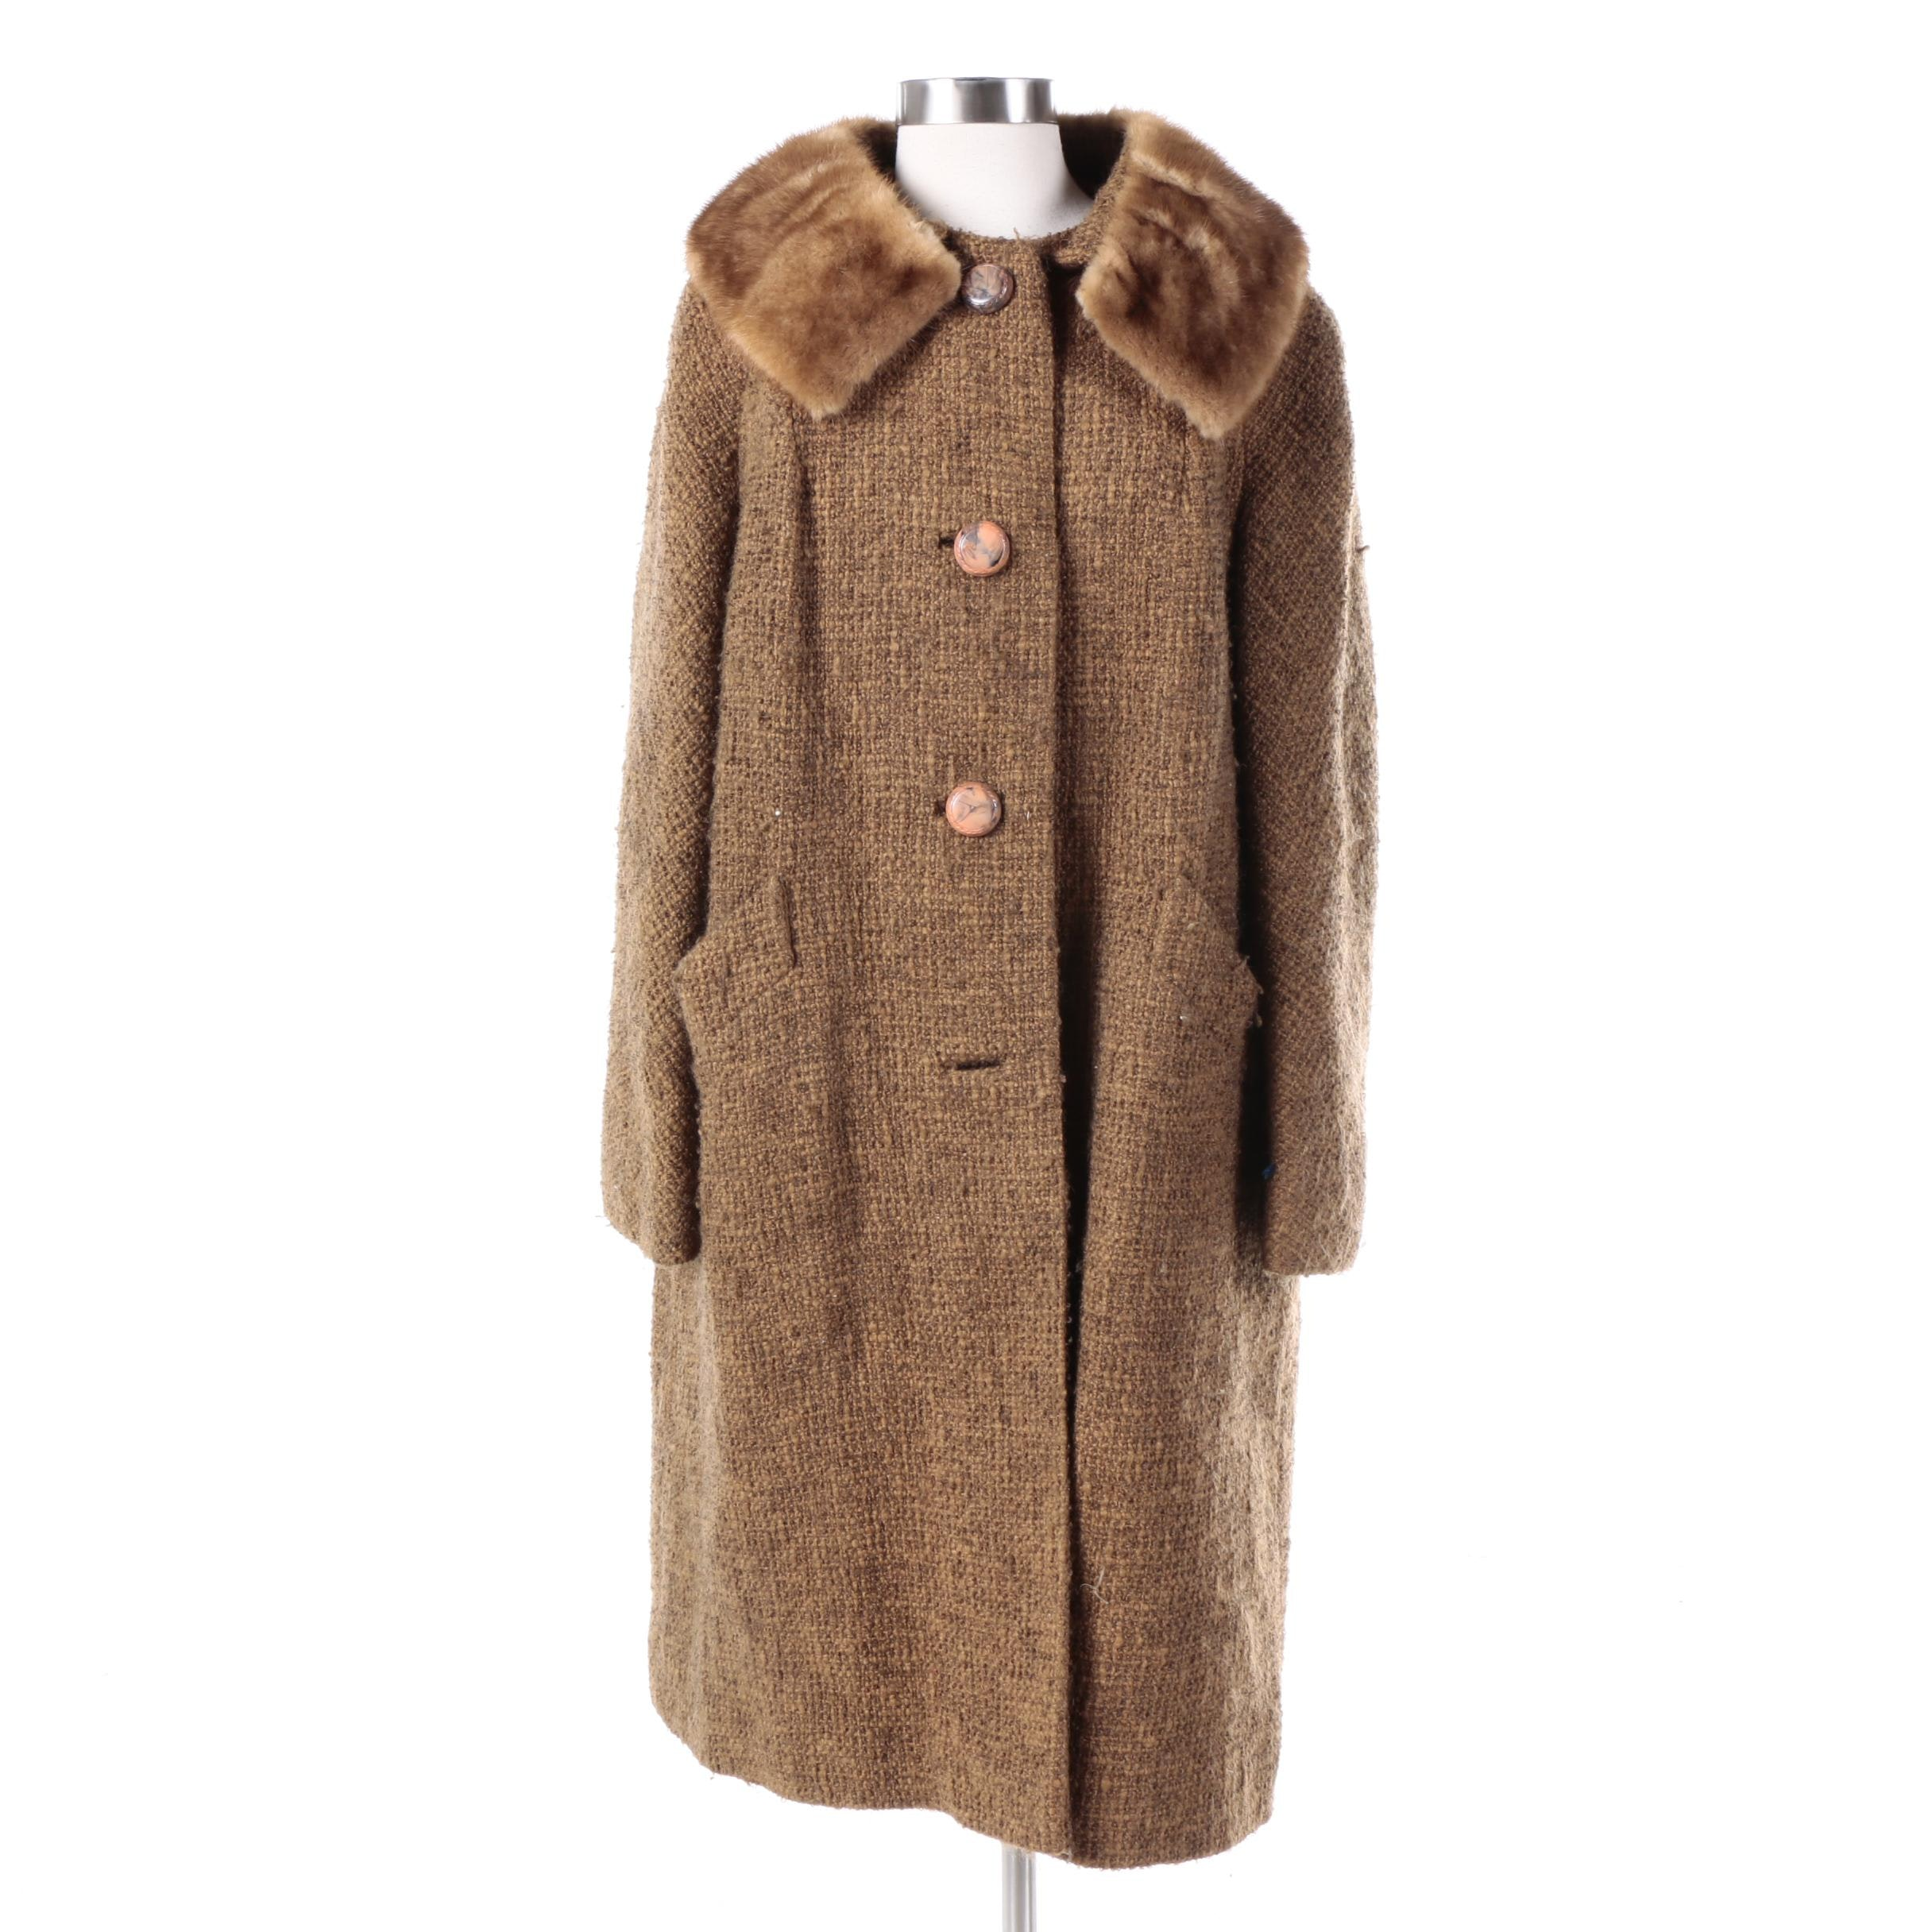 Women's Vintage Petersen's Wool Overcoat with Mink Fur Collar